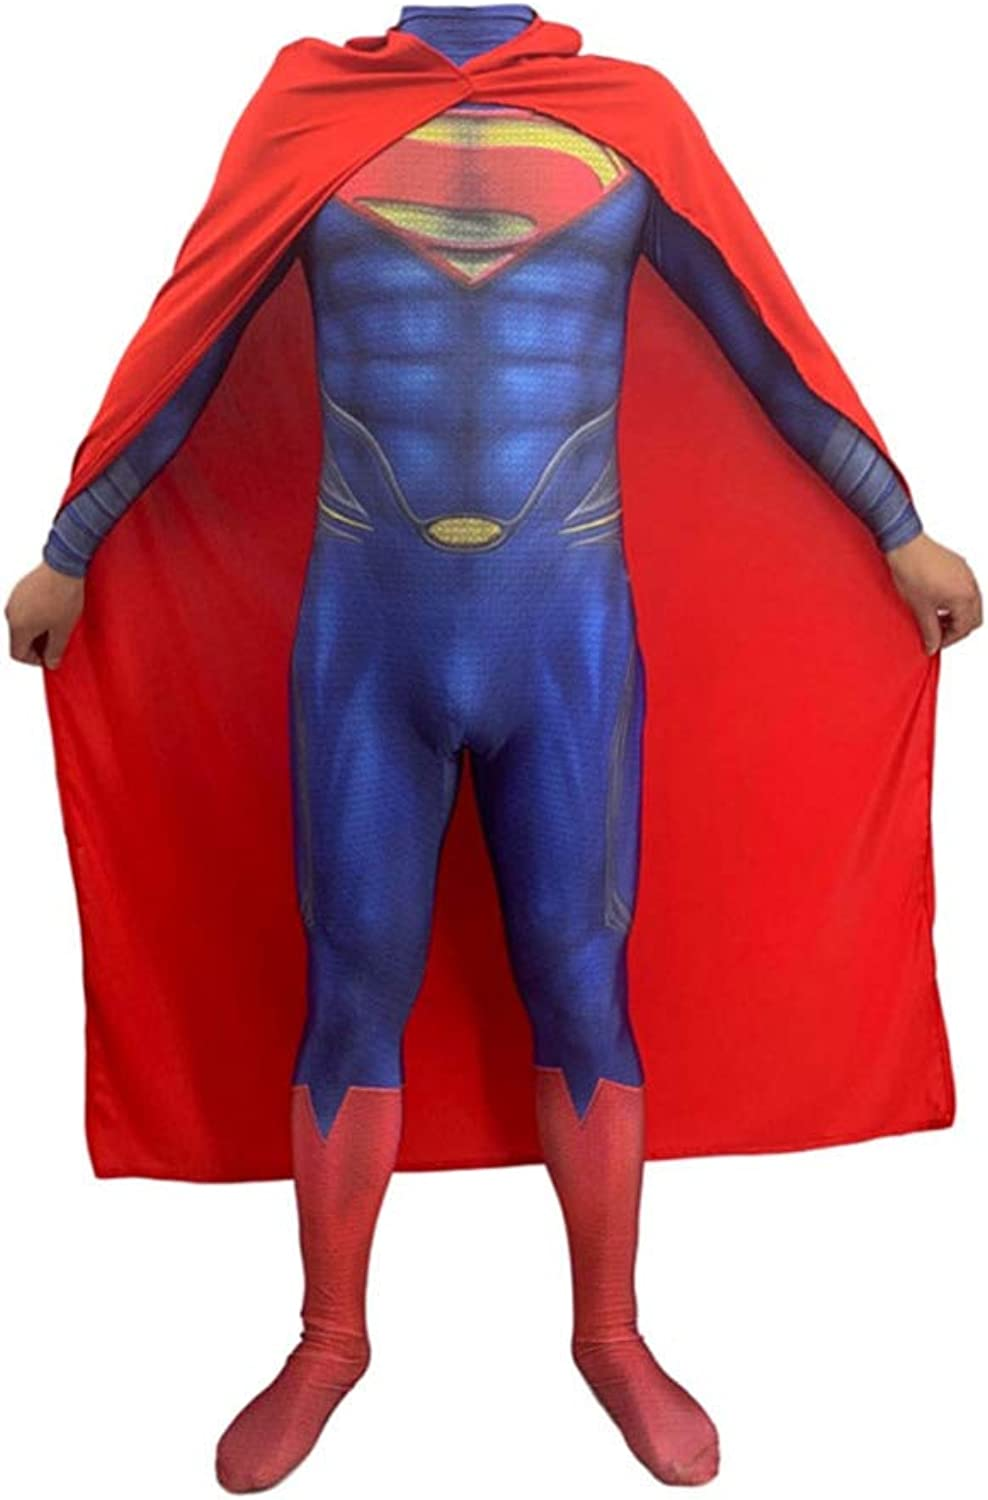 ASJUNQ Superman 3D Druck Anime Kostüm Halloween Cosplay Siamesische Strumpfhosen Kostüm Party Thema Party Movie Requisiten,AdultXL